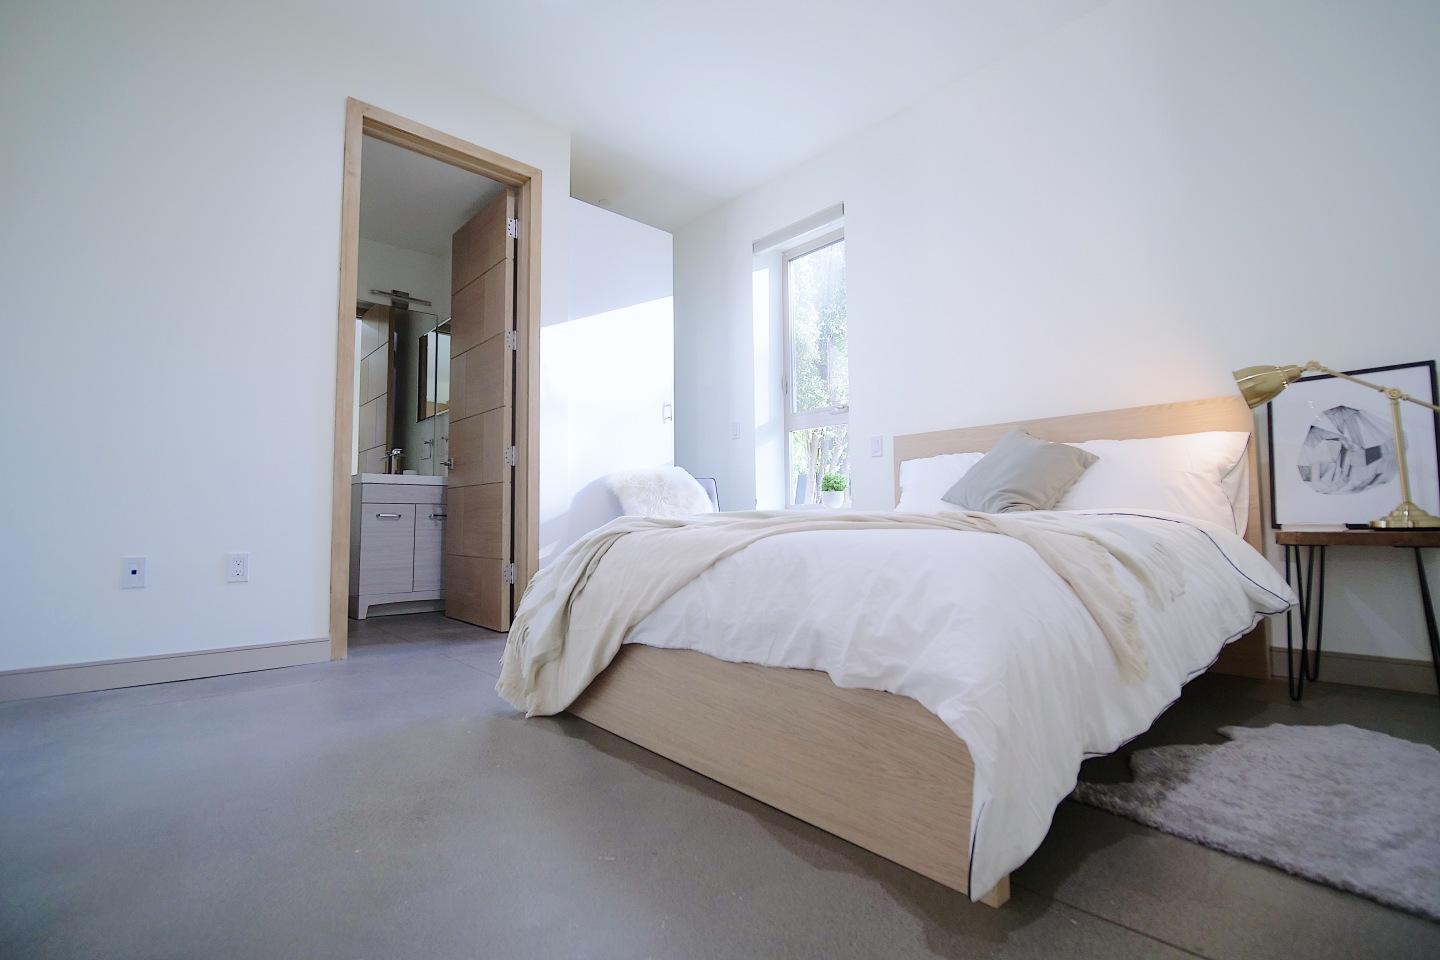 bright bedroom with white fluffy bed